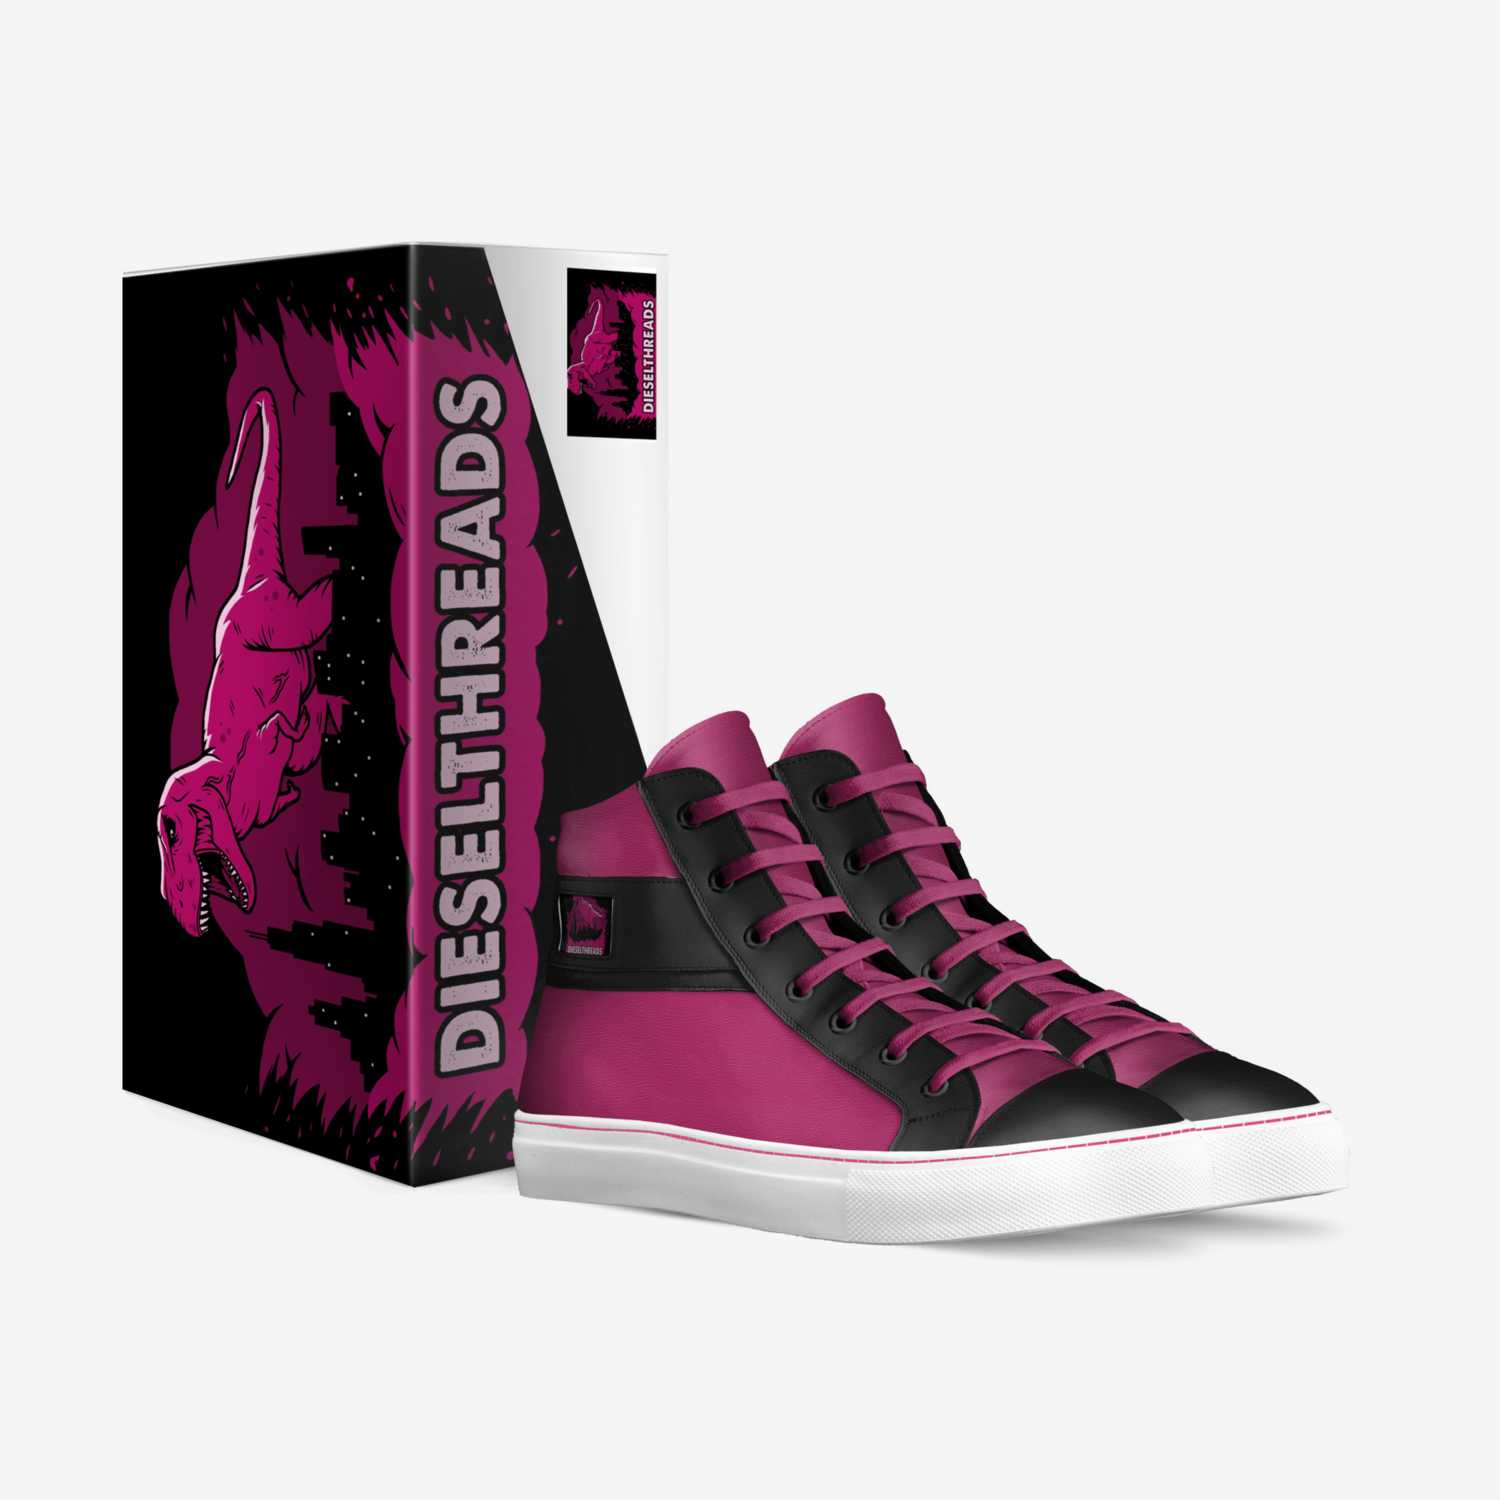 Magenta Highs custom made in Italy shoes by Michael Wesley   Box view